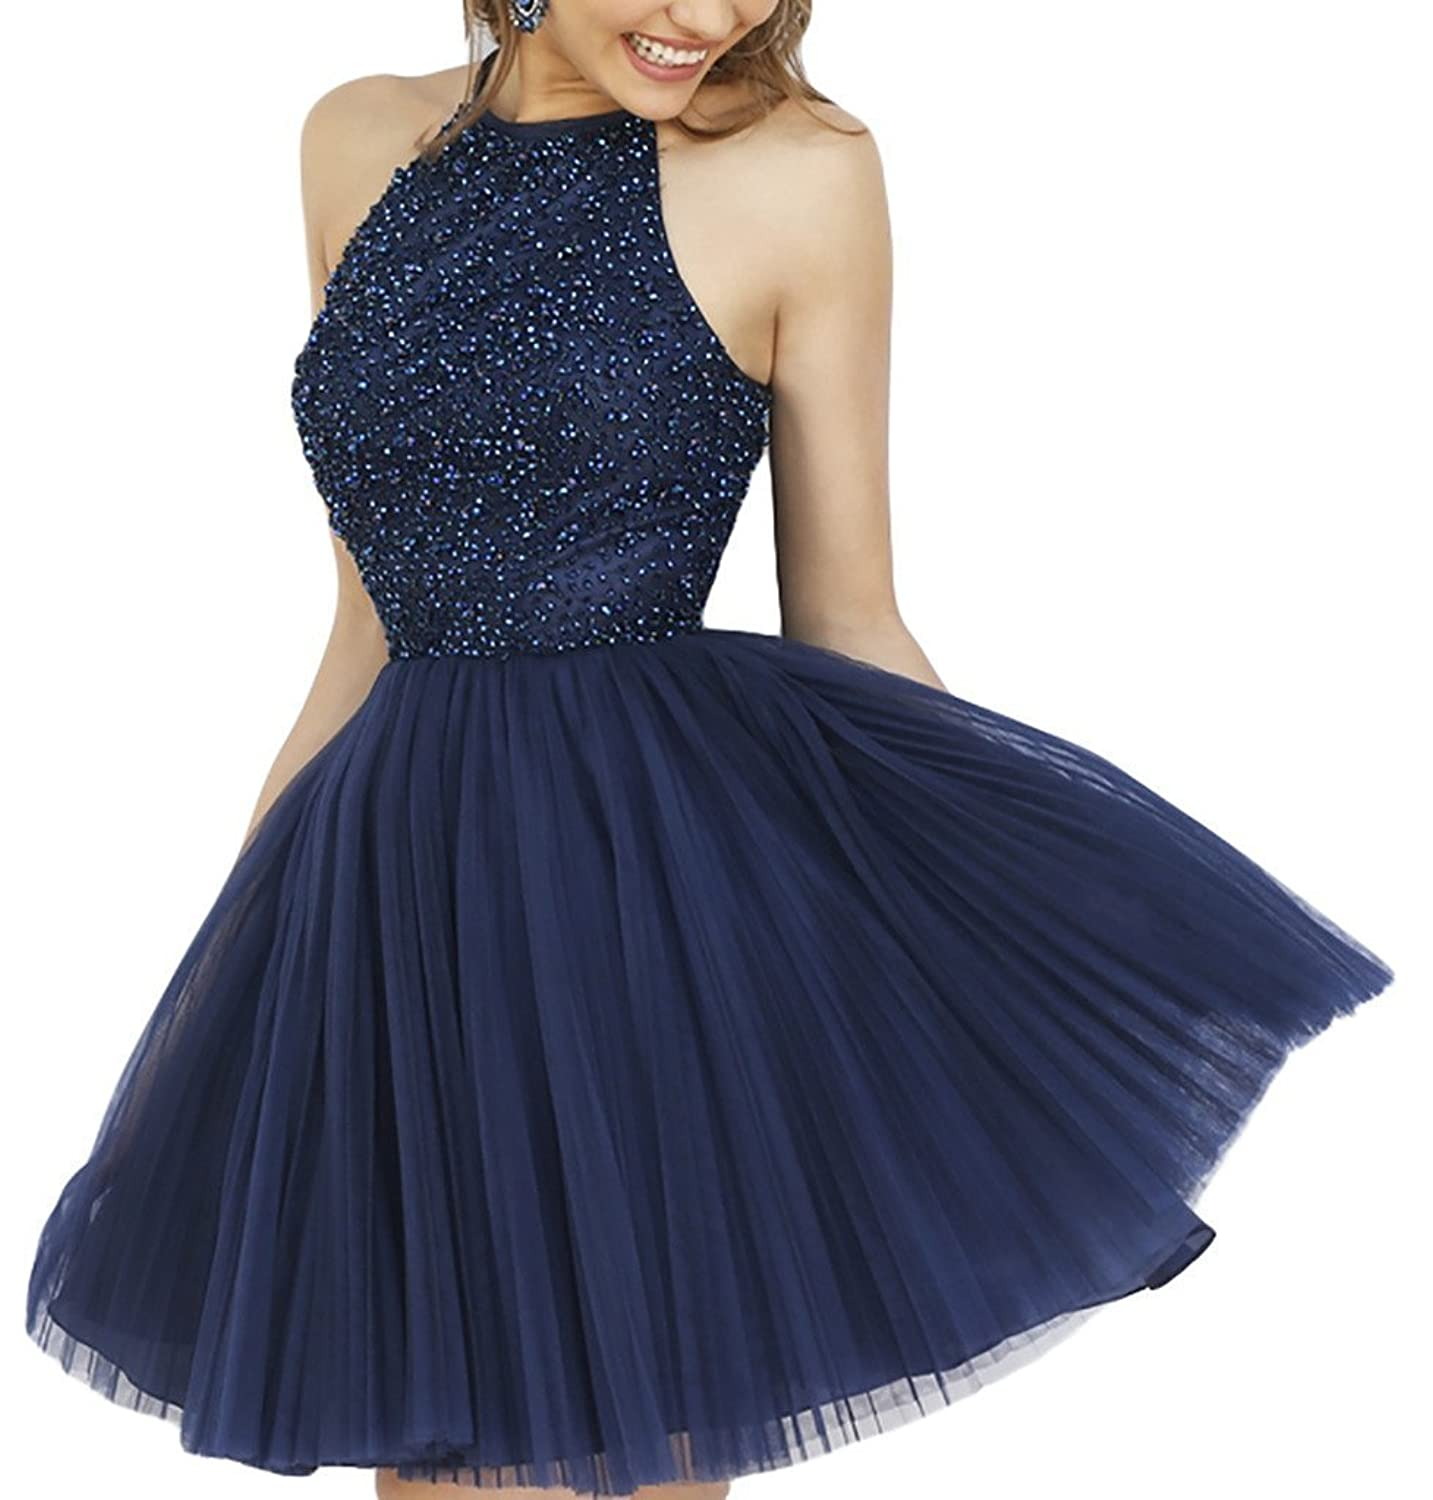 ALfany Women's Beading Short Backless Prom Dresses Ball Gown ALF070